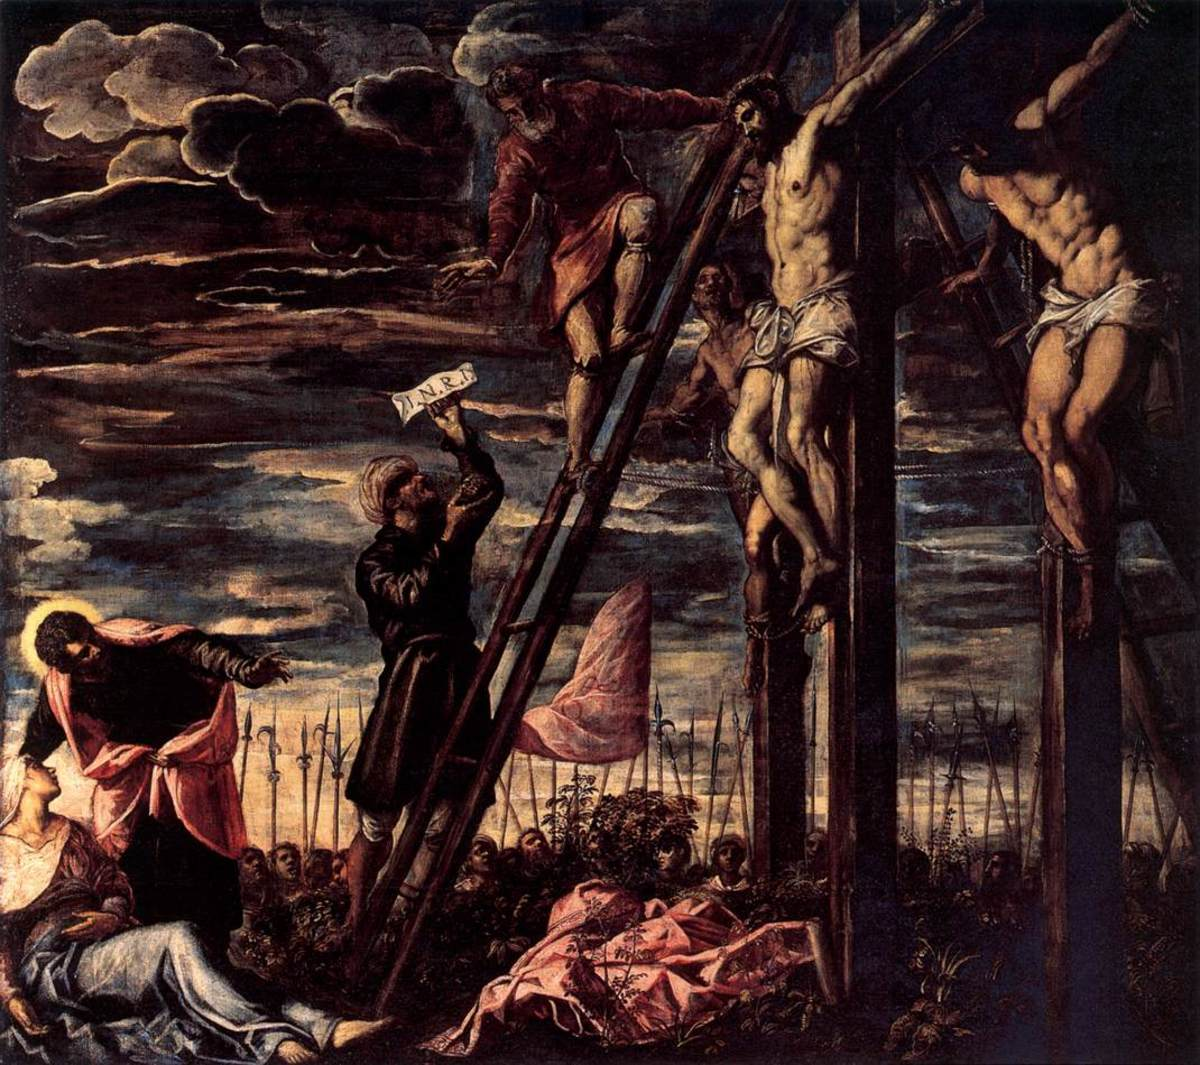 """CRUCIFIXION OF CHRIST"" BY TINTORETTO 1568"